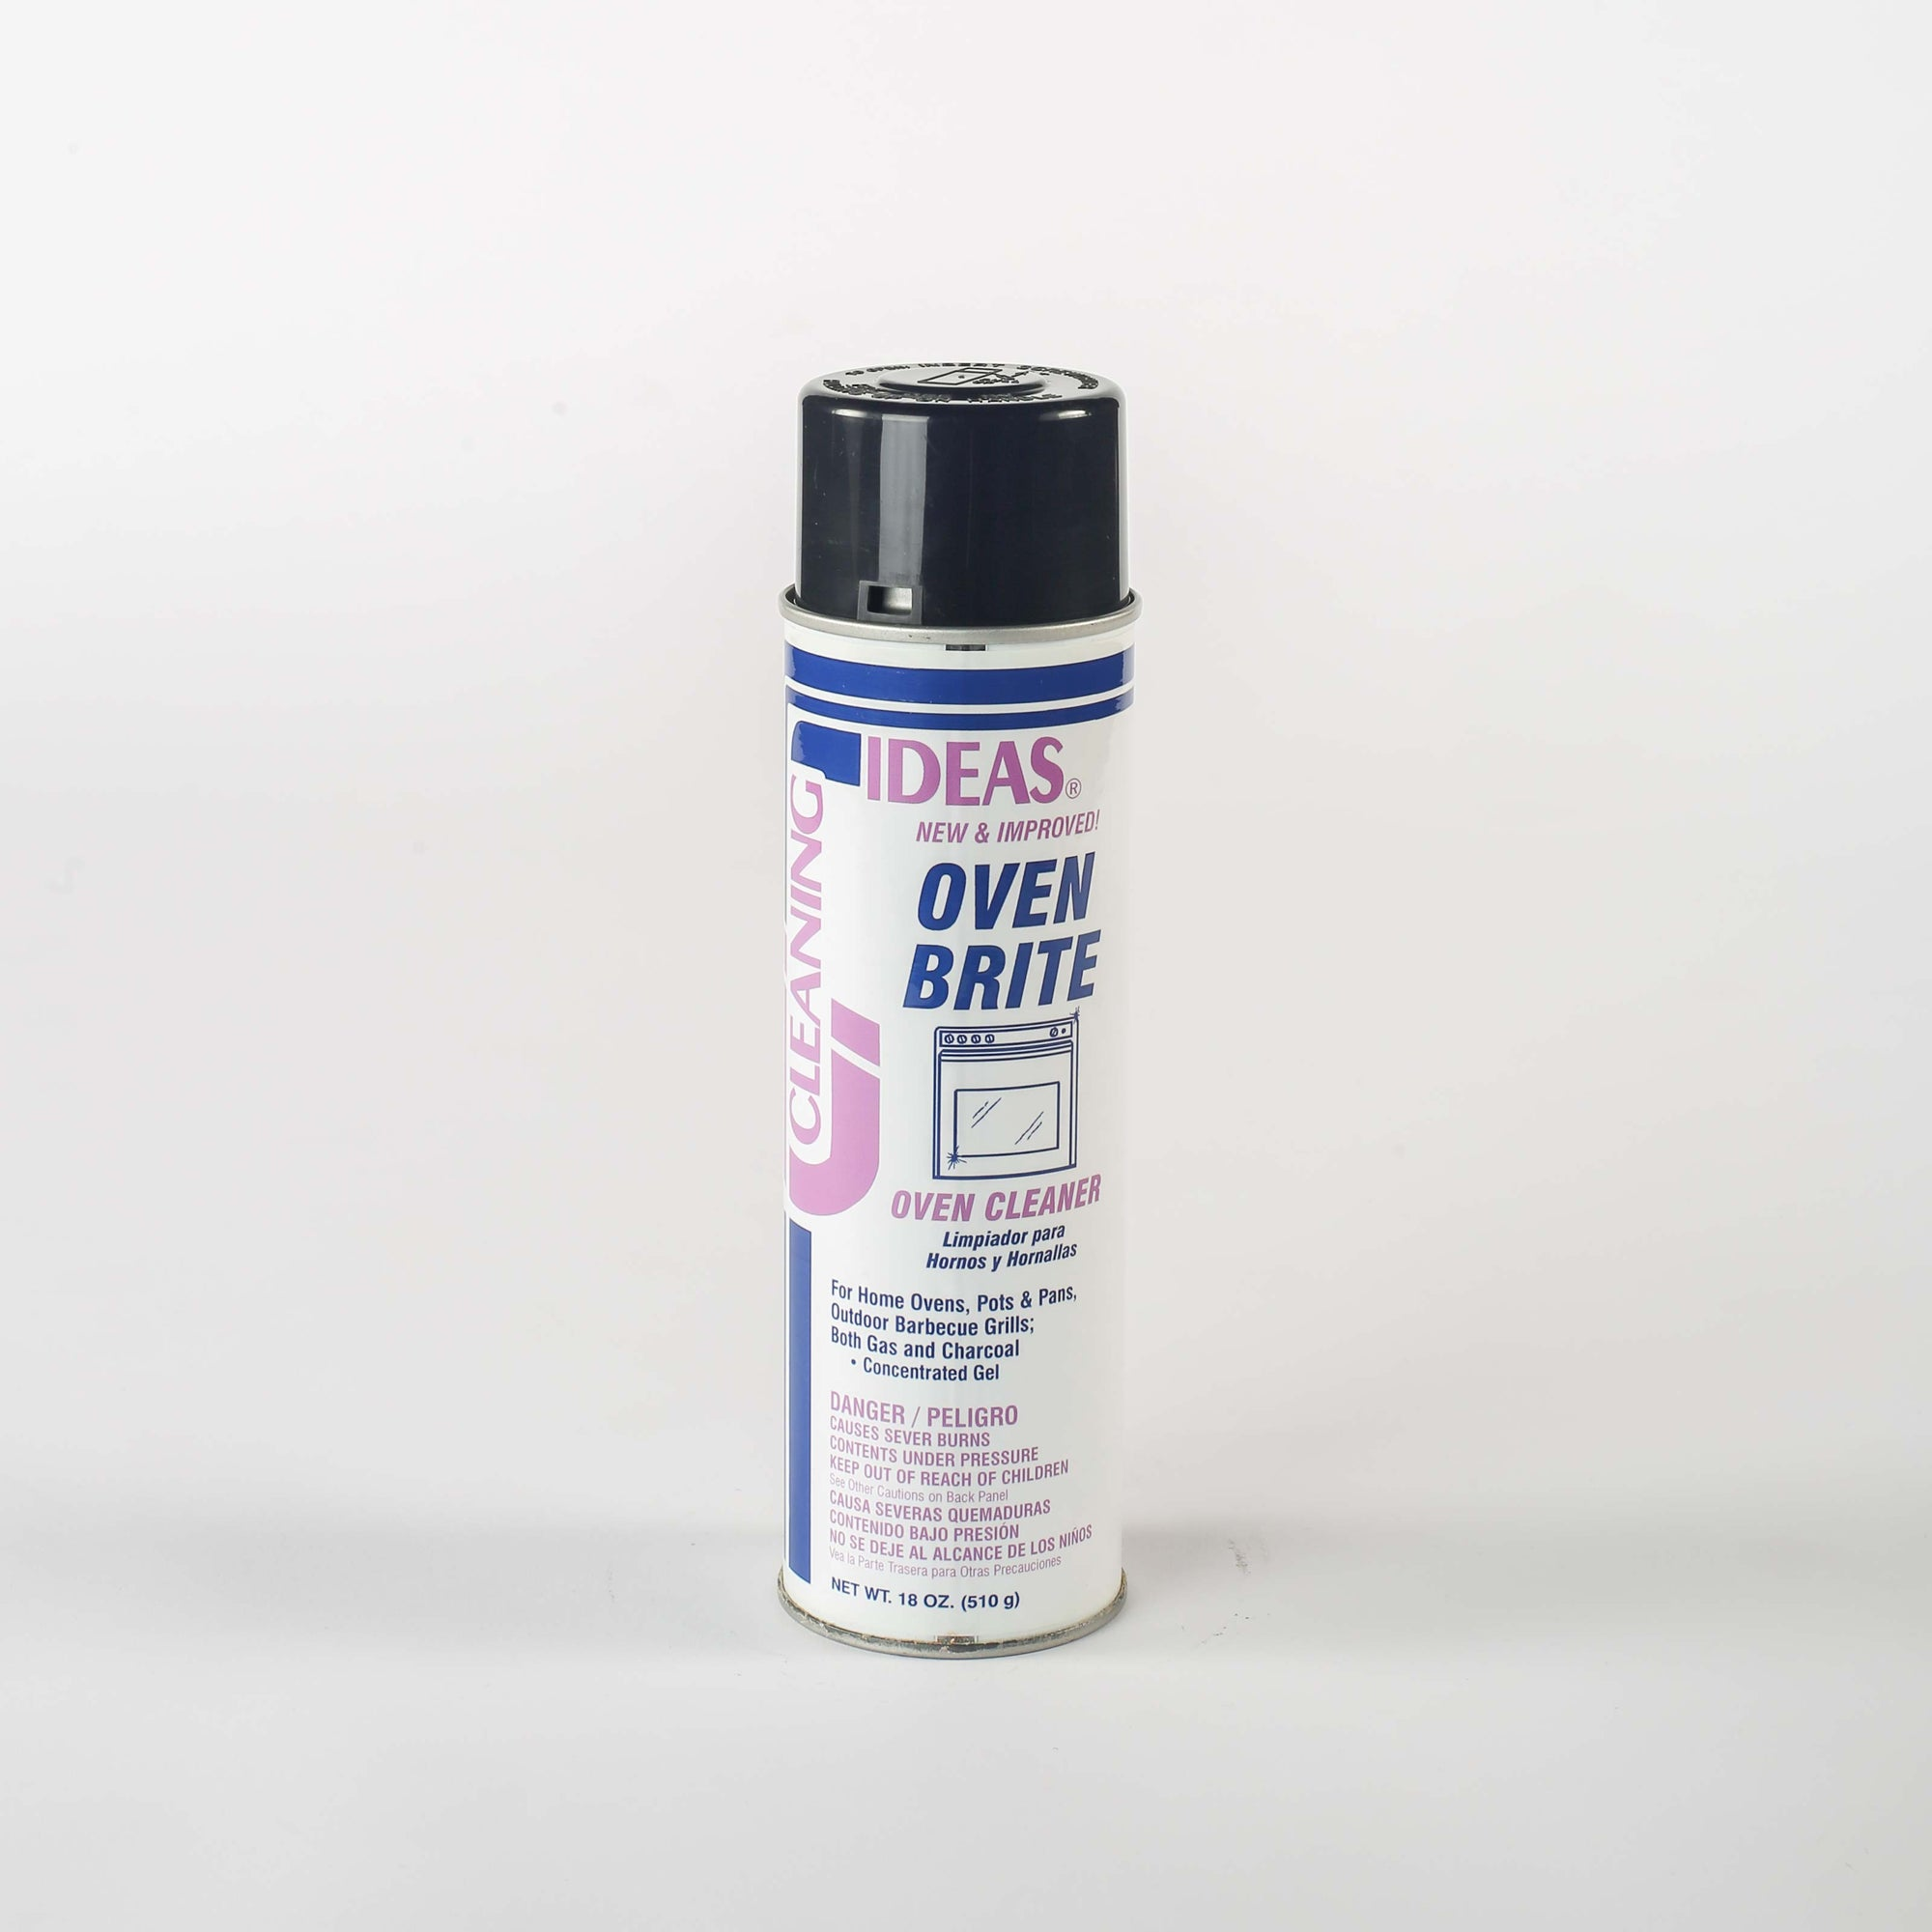 Oven Brite Oven Cleaner